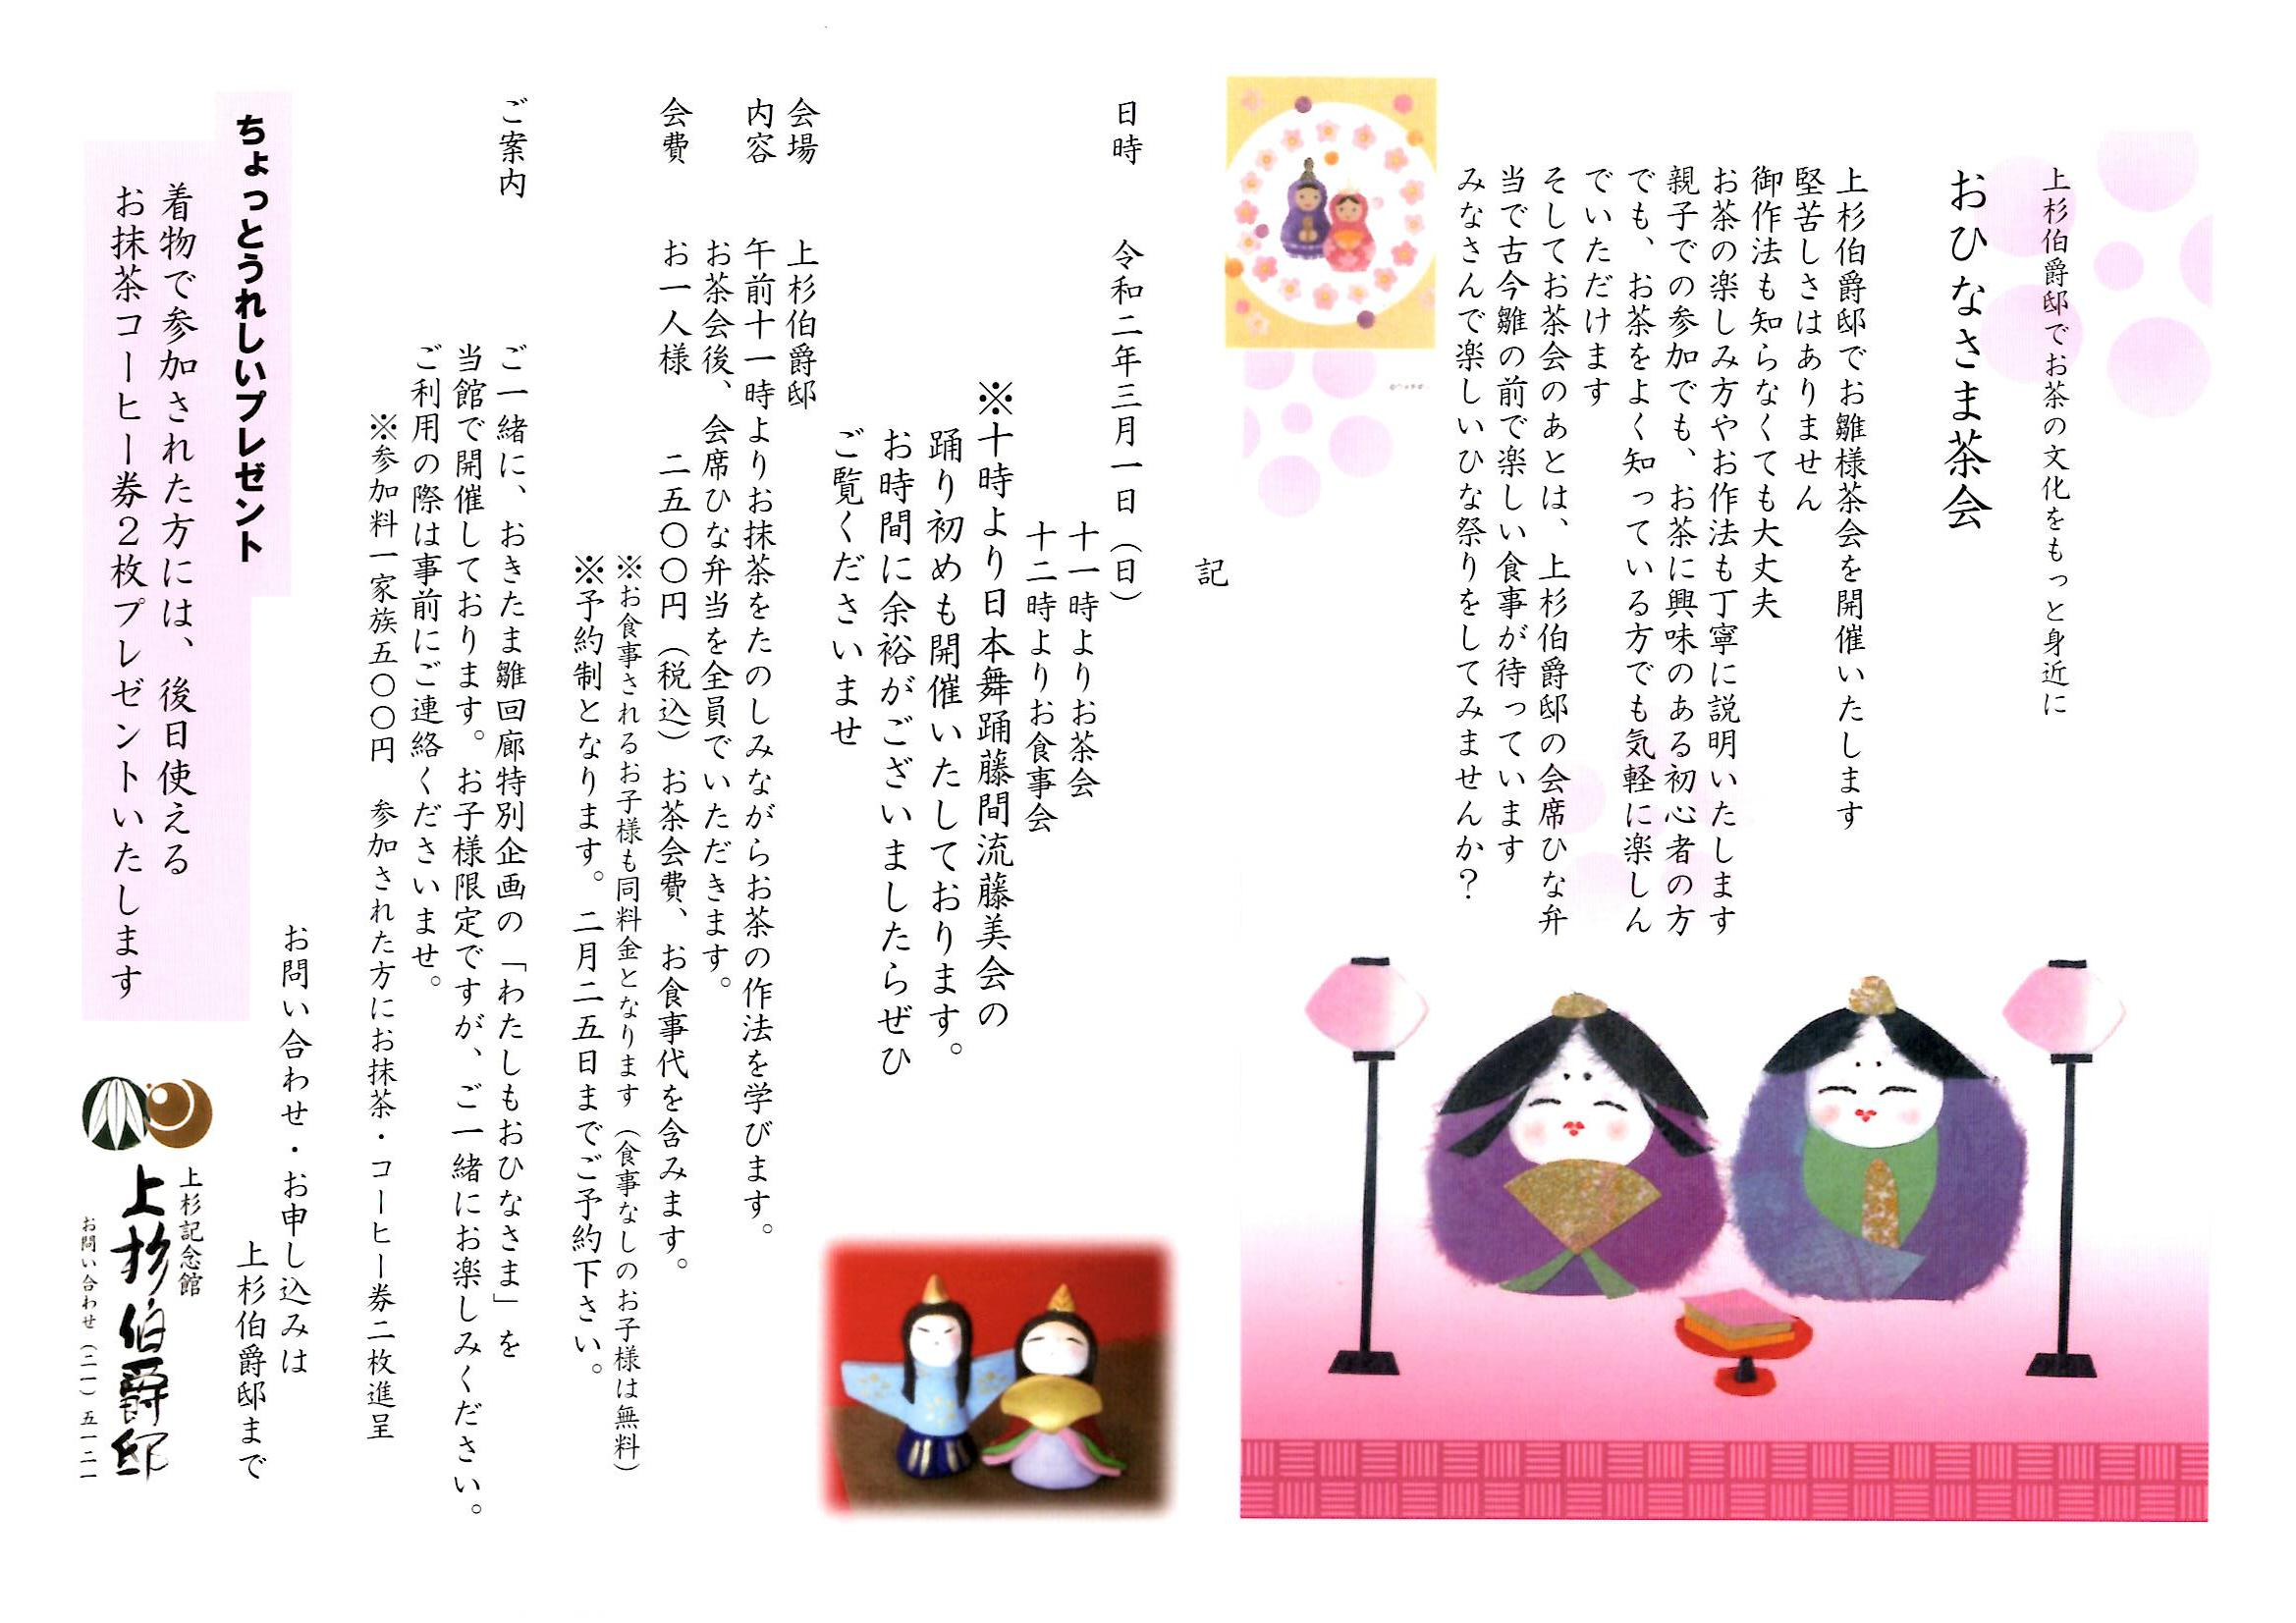 Uesugi Hakushakutei Hina Doll Gallery: Hina Dolls by the Artisans of Today